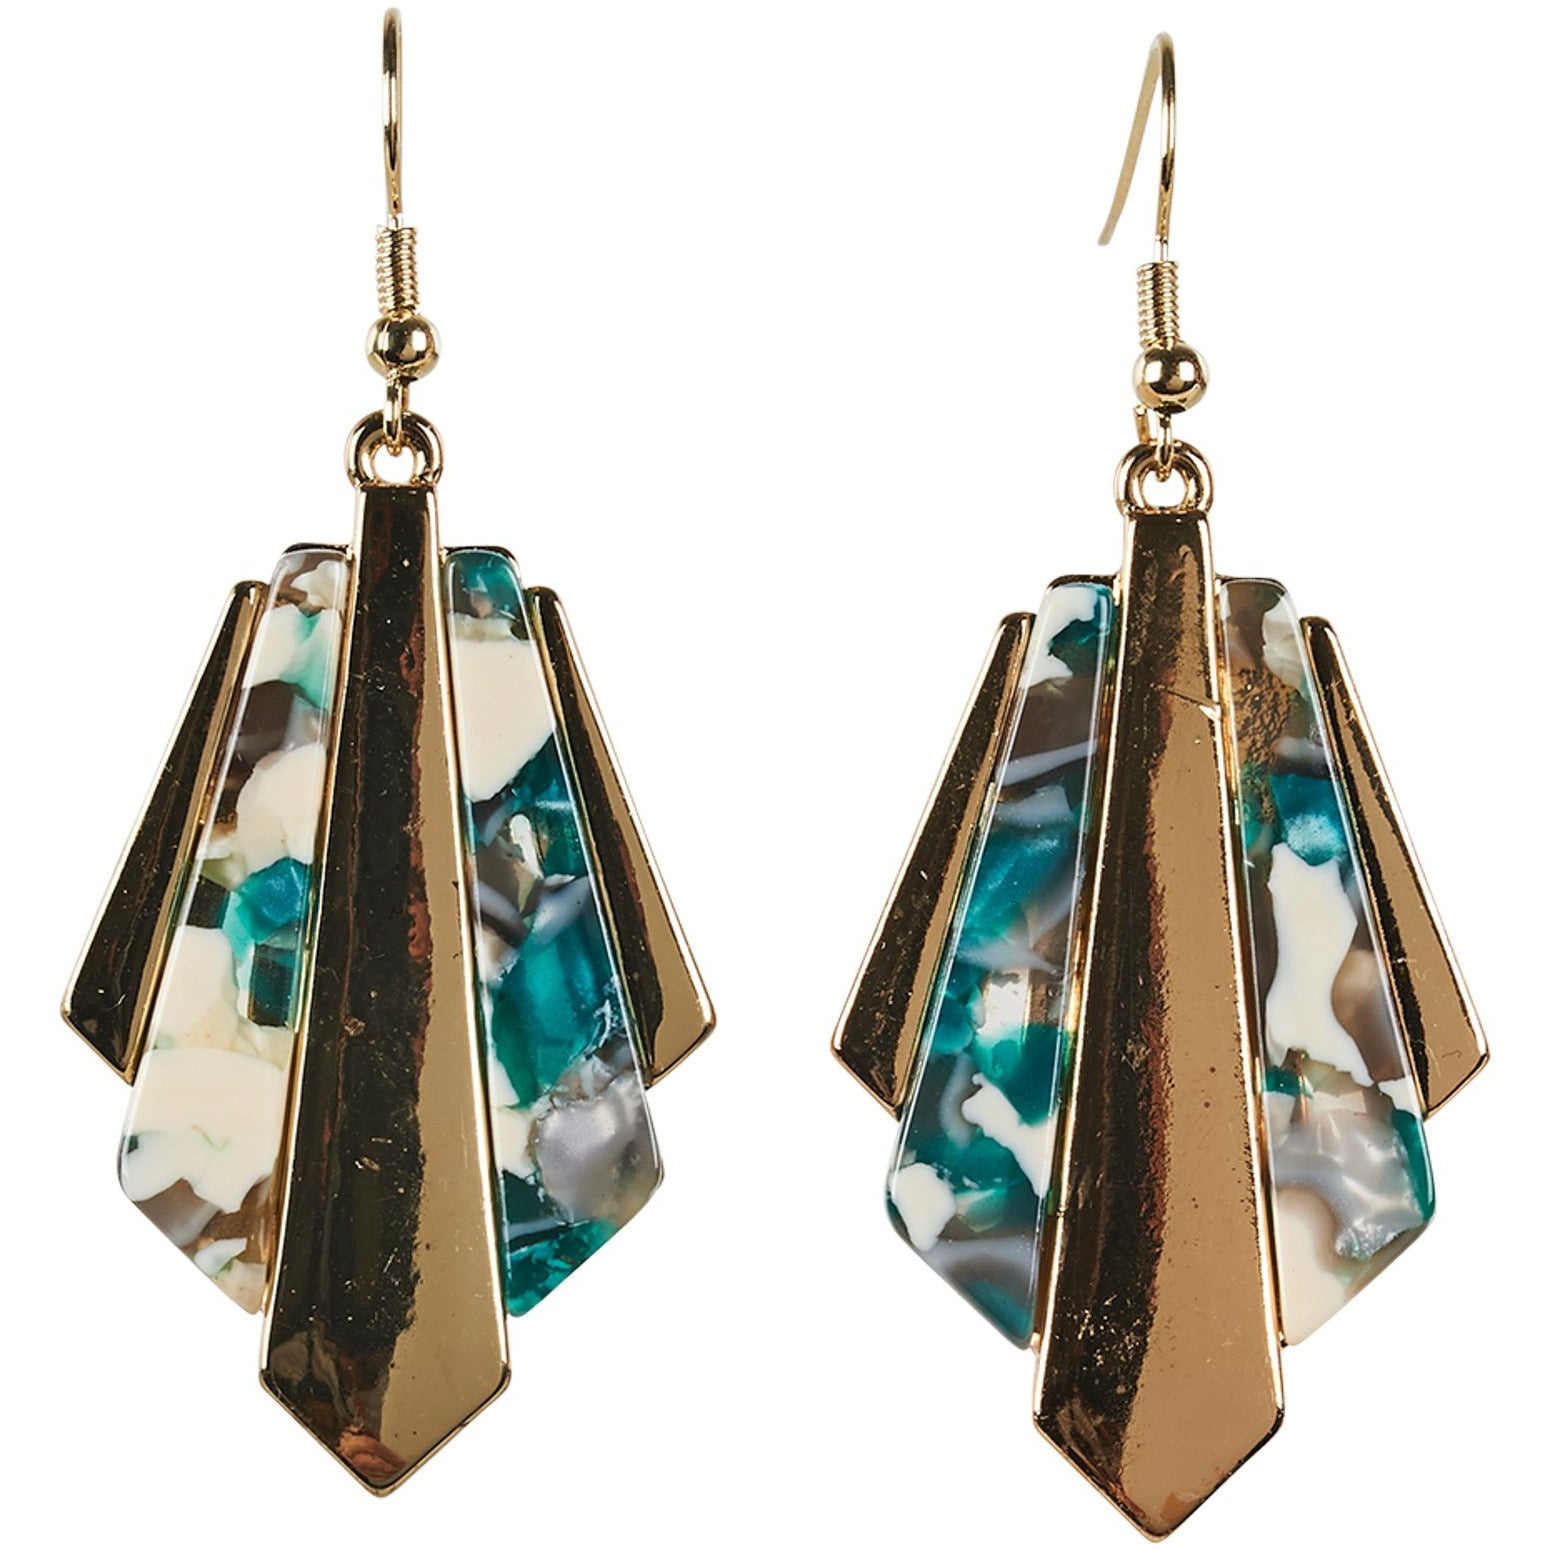 eb&ive Zena Jagged Earrings in Jadestone